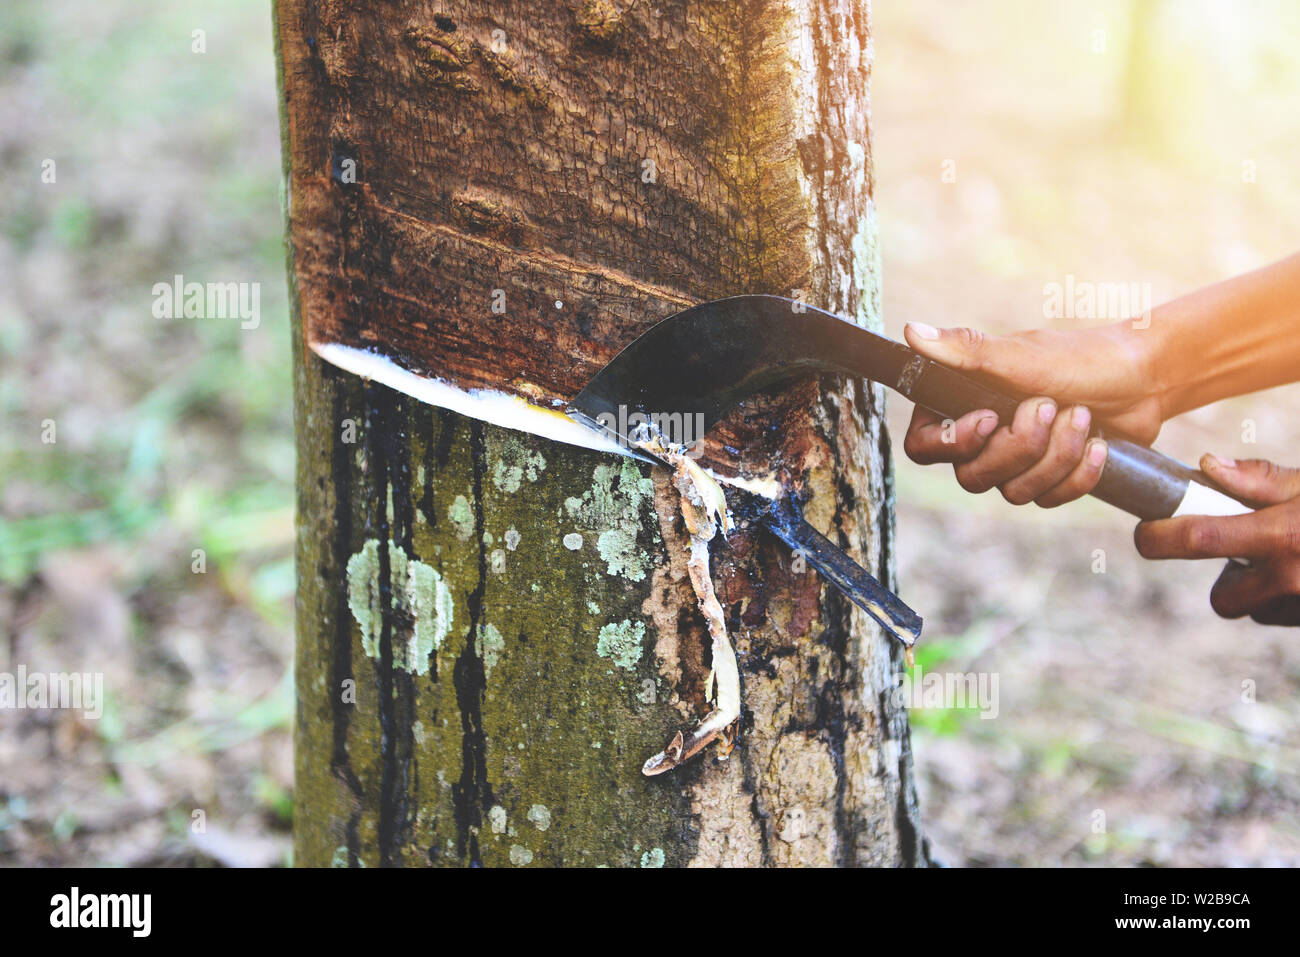 Tapping latex rubber extracted from rubber tree plantation agriculture of asia for natural latex - Stock Image